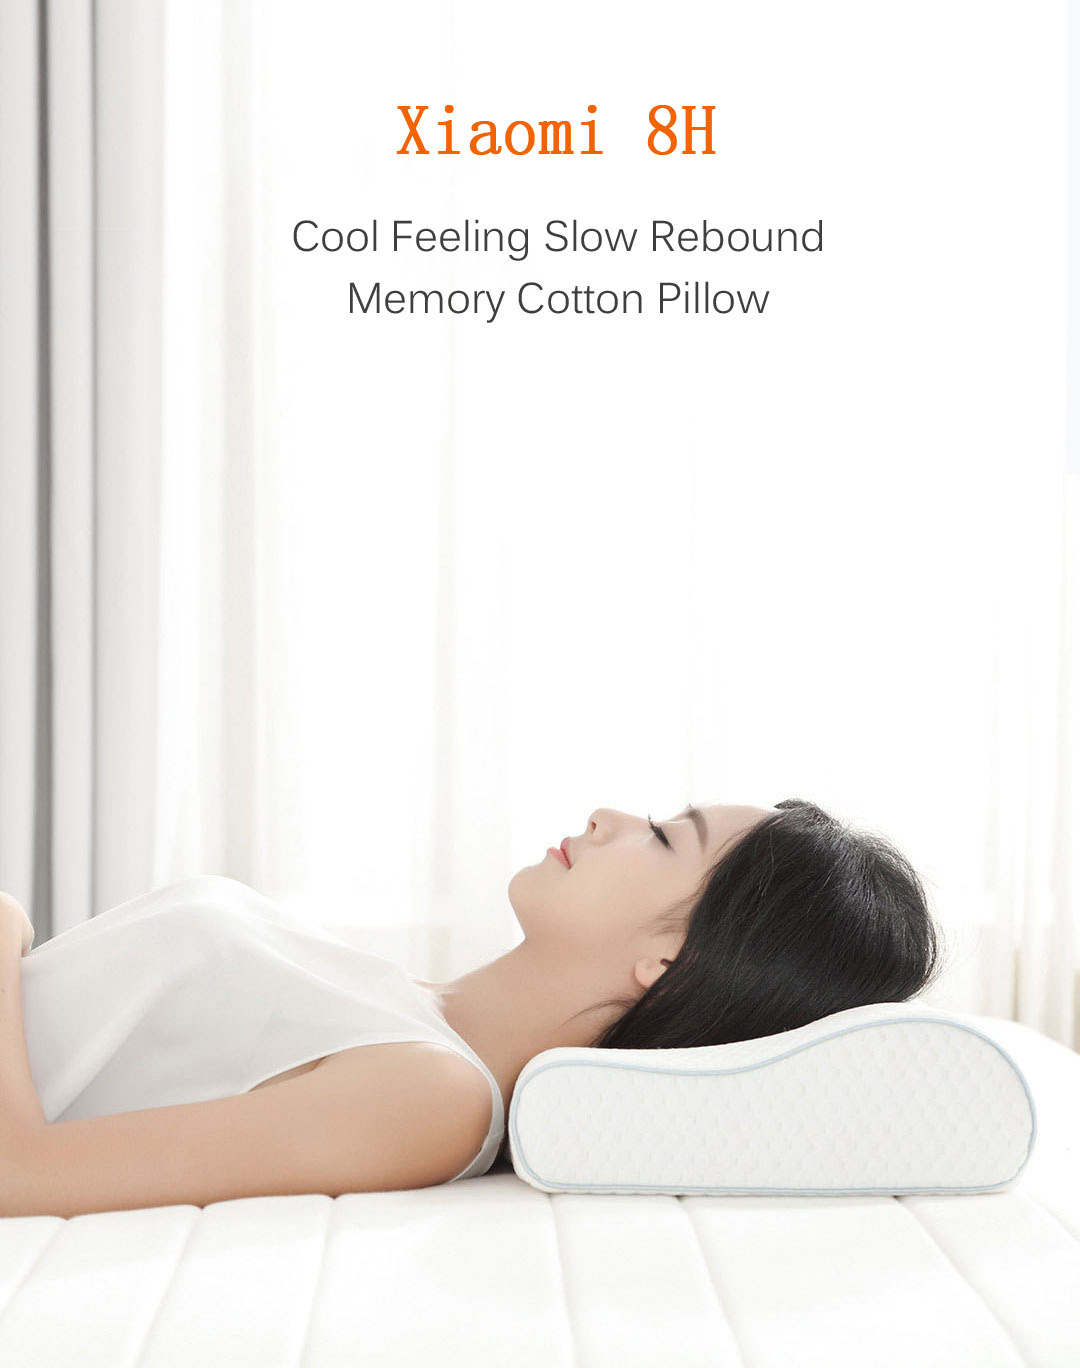 Xiaomi 8H Cool Feeling Slow Rebound Memory Cotton Pillow H1 Super Soft Antibacterial Neck Support Pillow